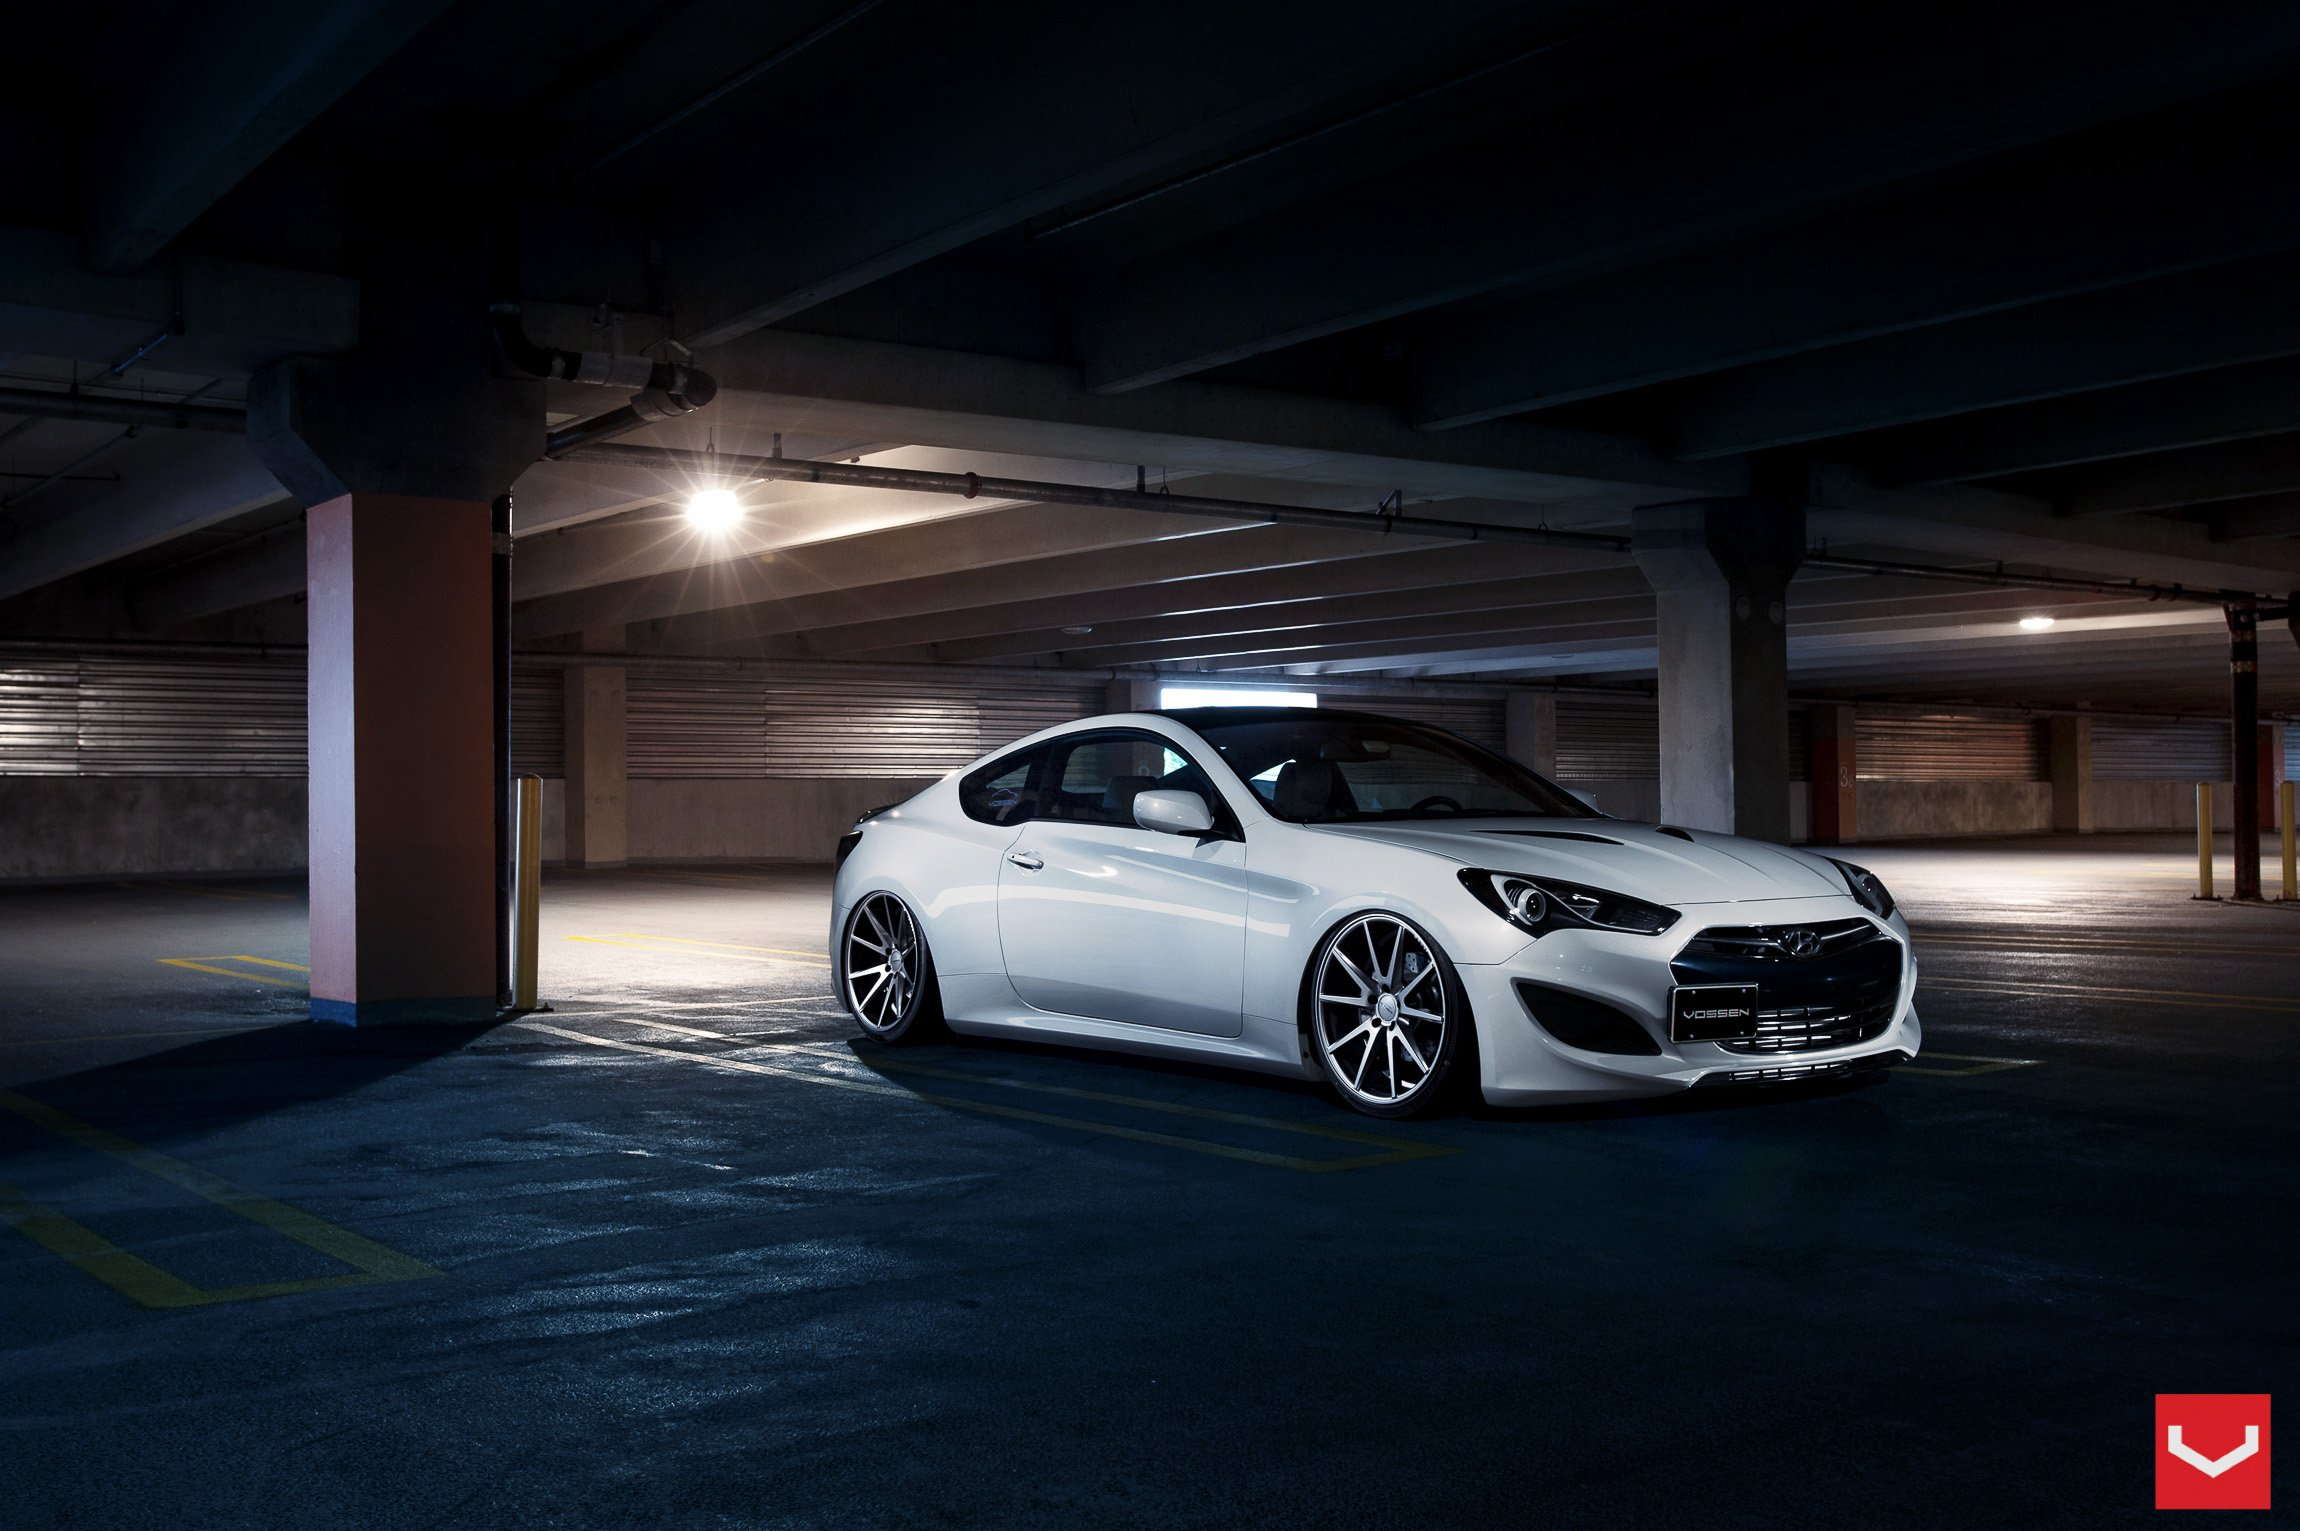 Vossen Wheels Hyundai Genesis Coupe Tuning Wallpaper